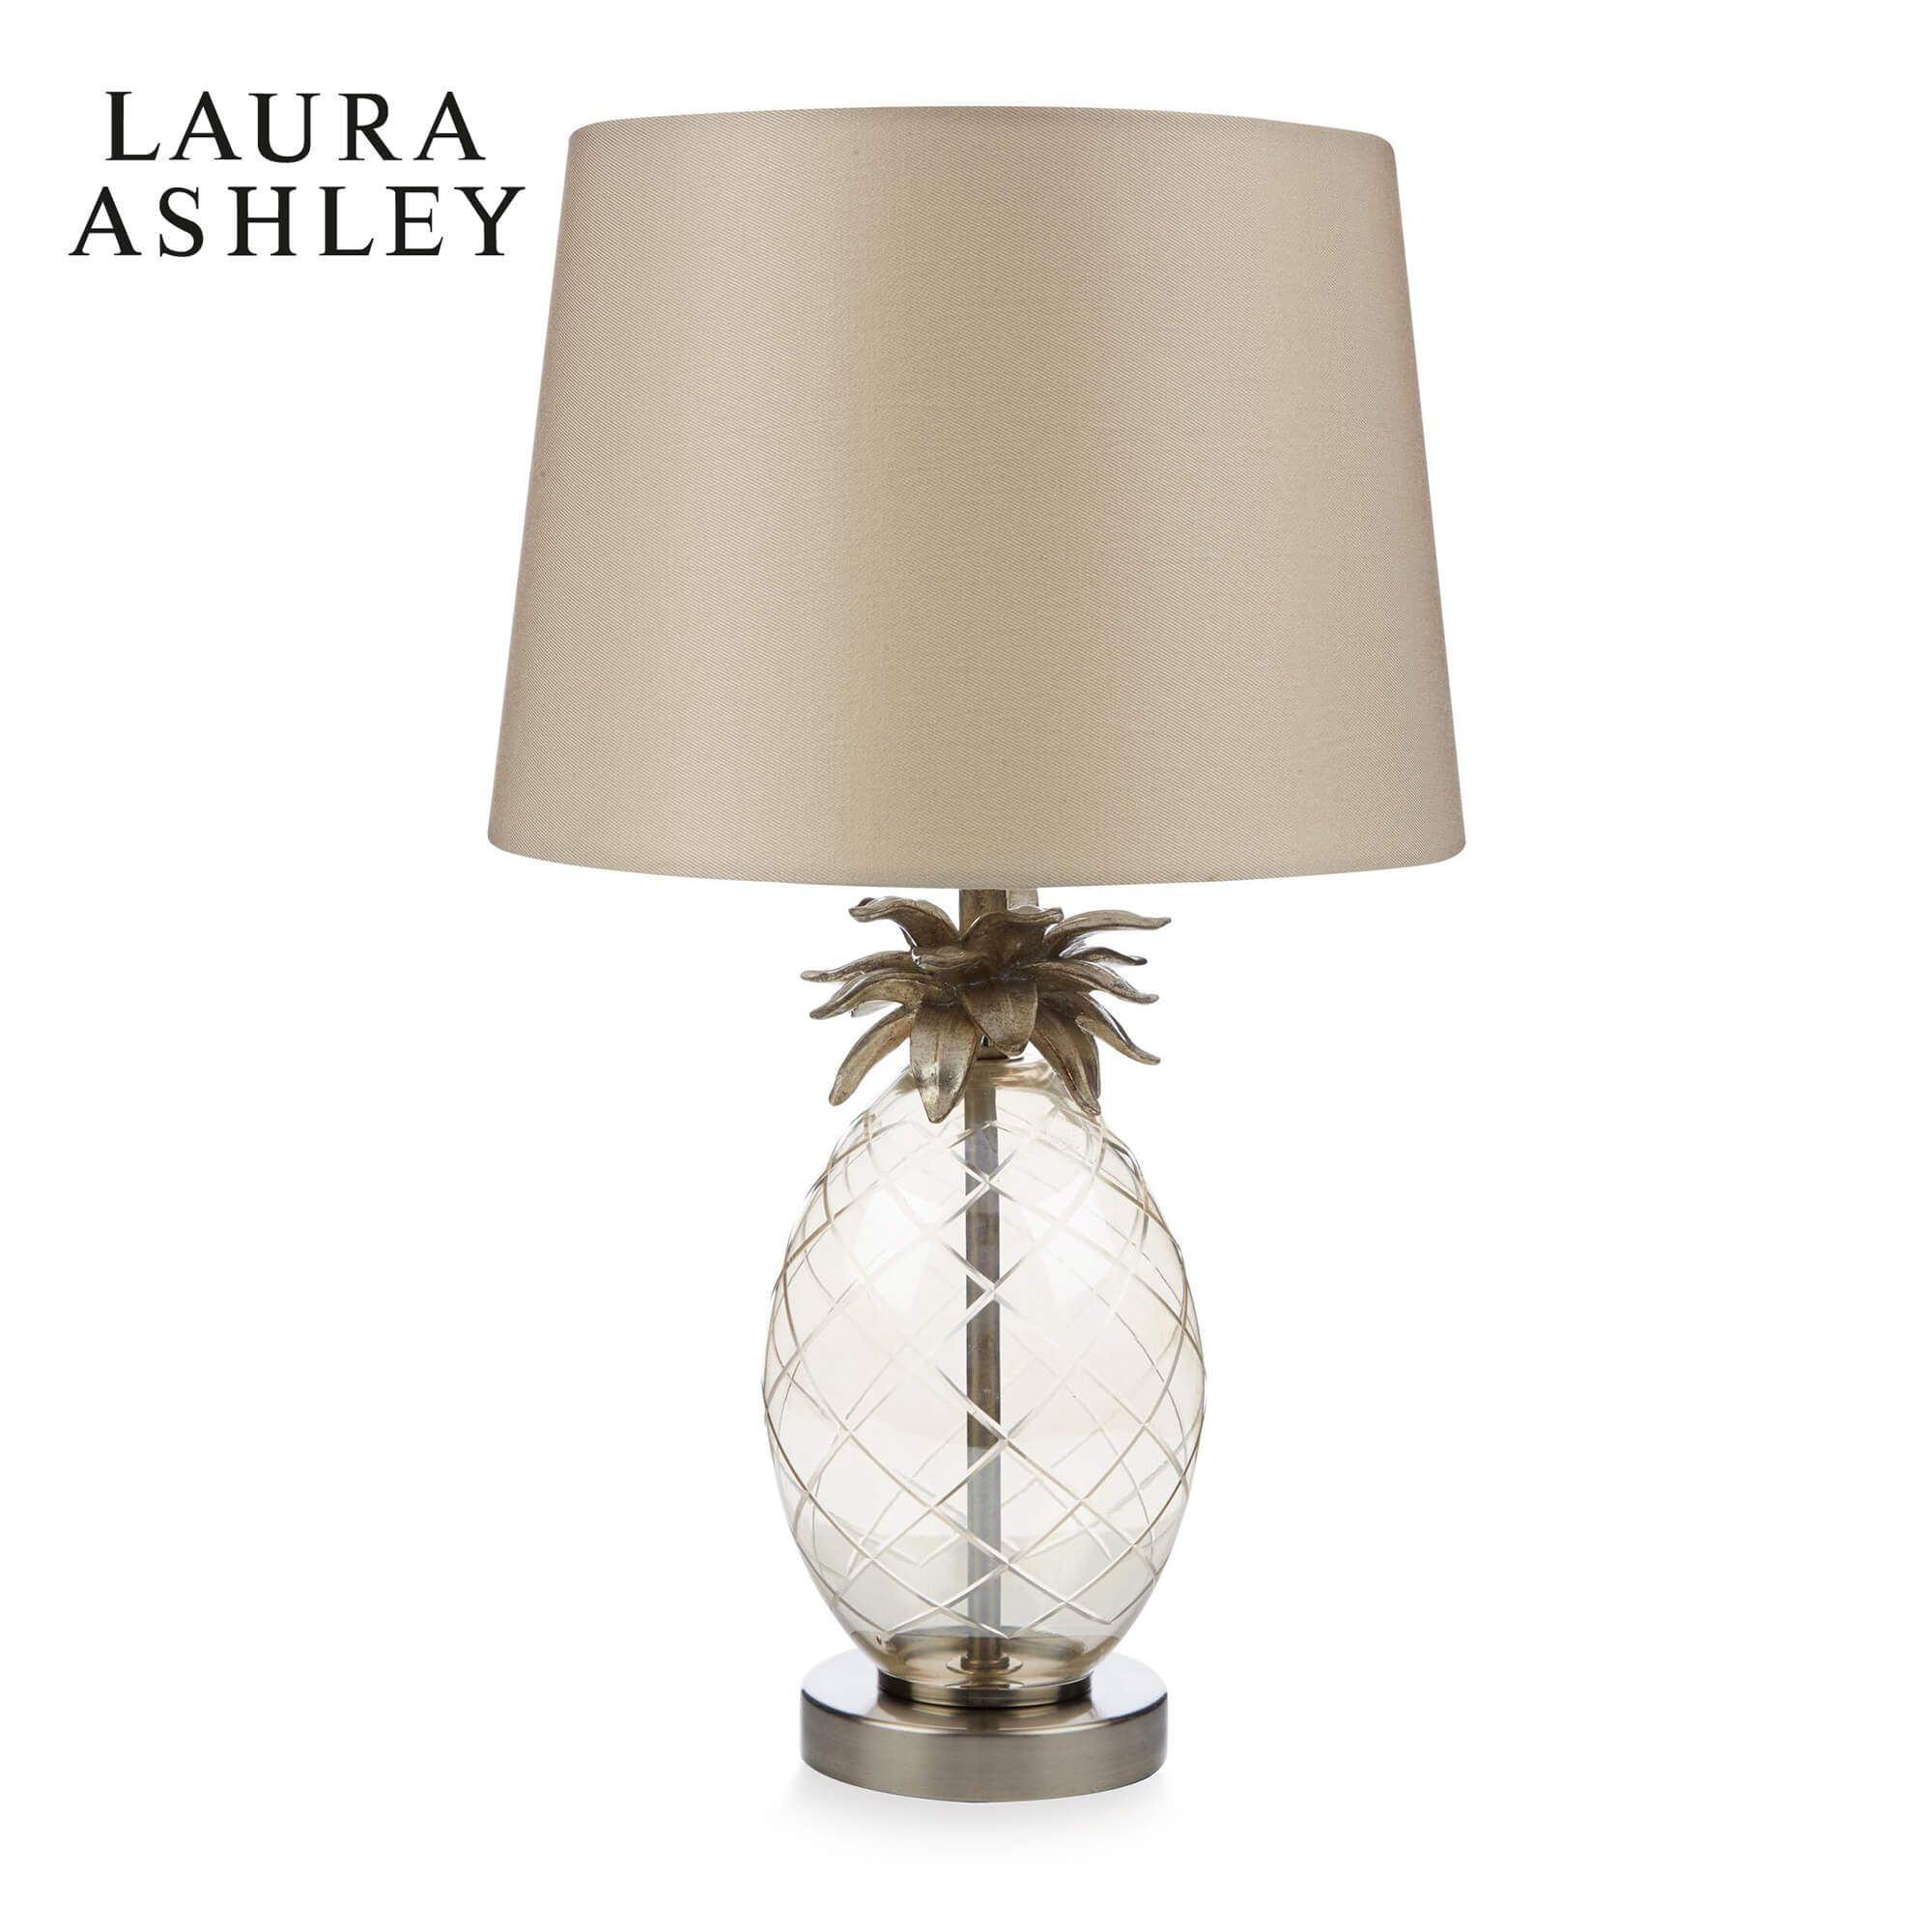 Laura Ashley Pineapple Small Table Lamp Glass With Shade